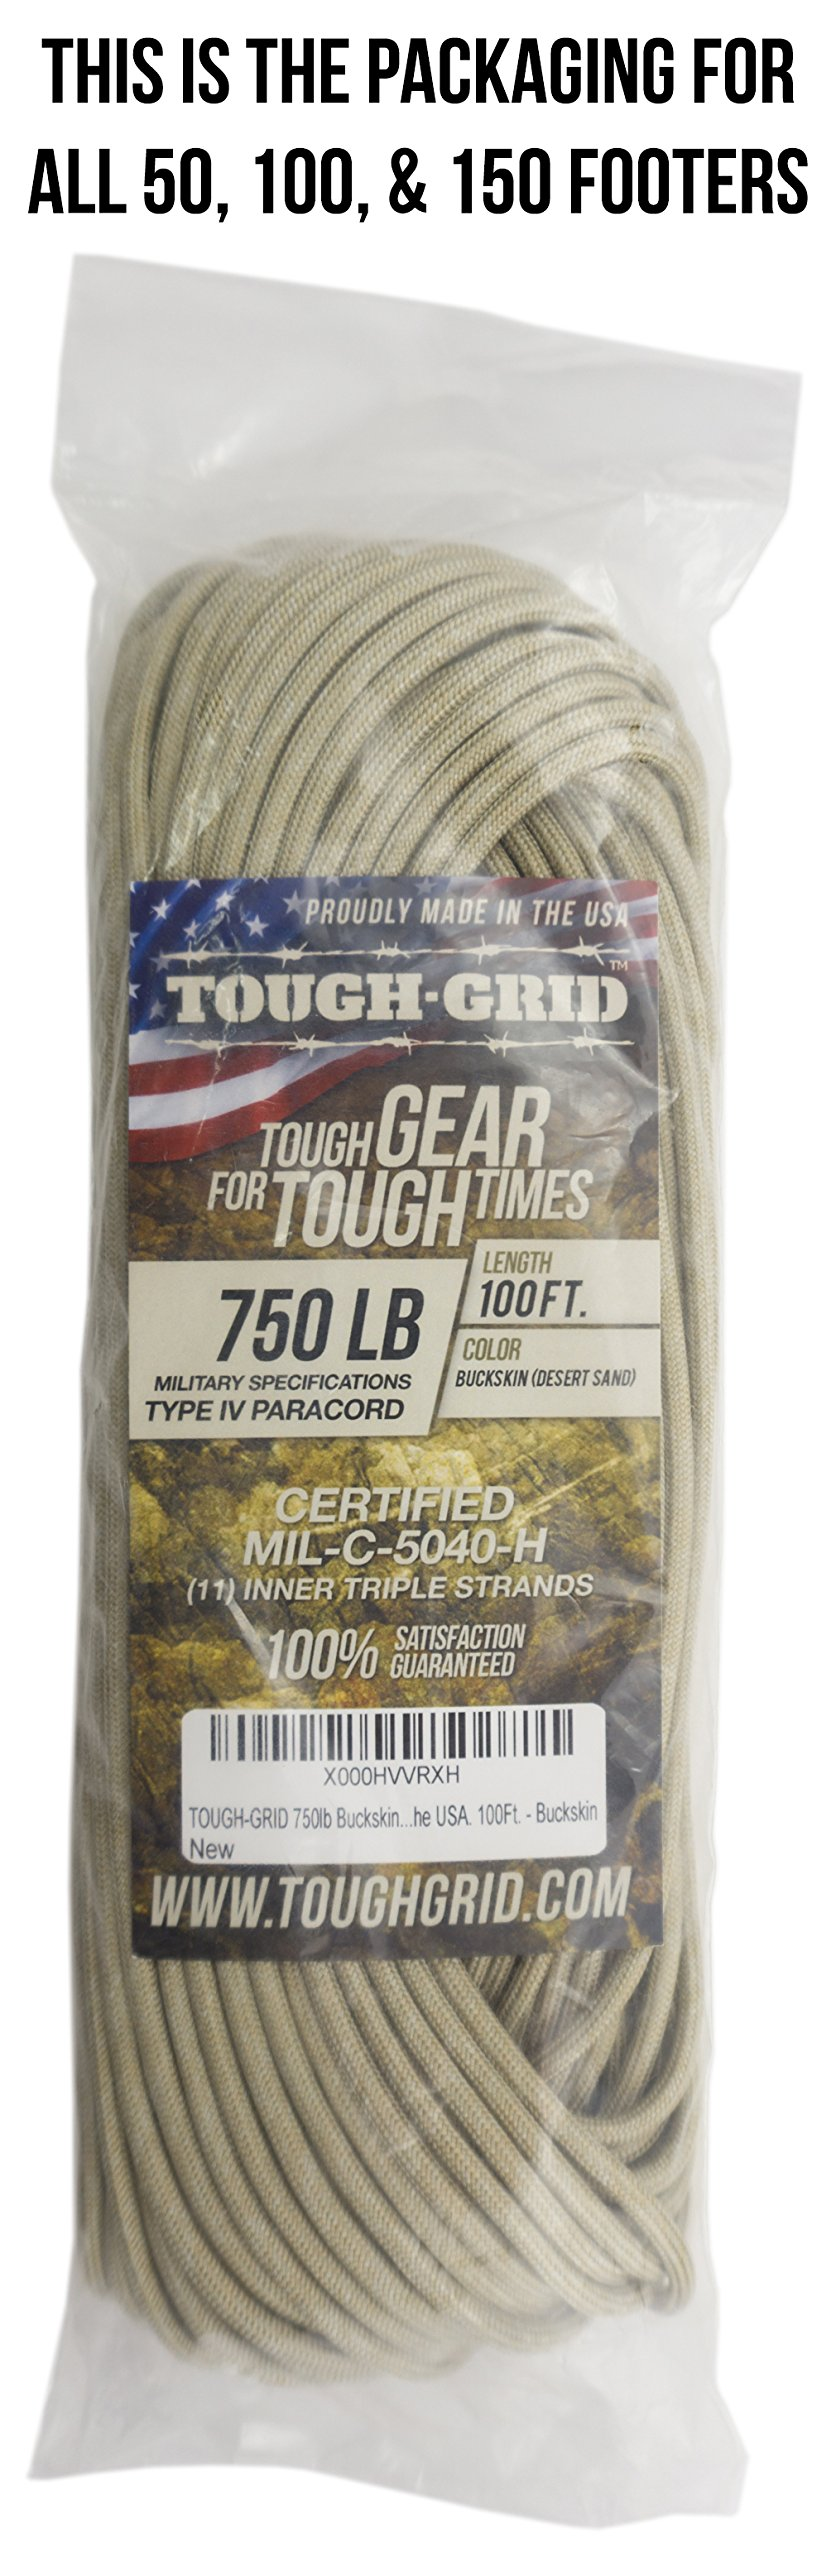 TOUGH-GRID 750lb Buckskin (Desert Sand) Paracord/Parachute Cord - Genuine Mil Spec Type IV 750lb Paracord Used by The US Military (MIl-C-5040-H) - 100% Nylon - Made in The USA. 200Ft. - Buckskin by TOUGH-GRID (Image #5)